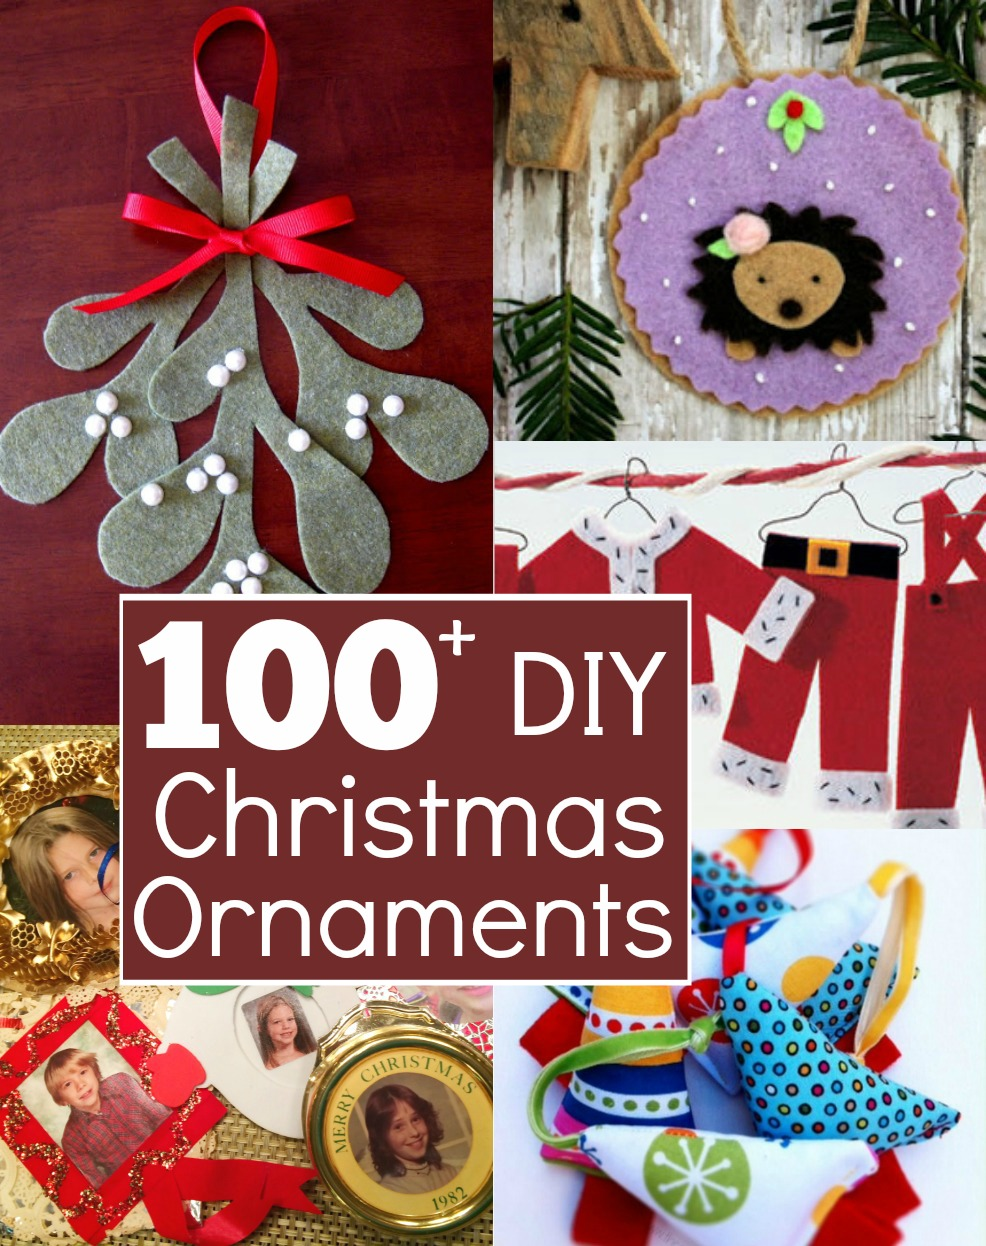 Deck the Tree with Christmas Ornaments - The Daily Seam